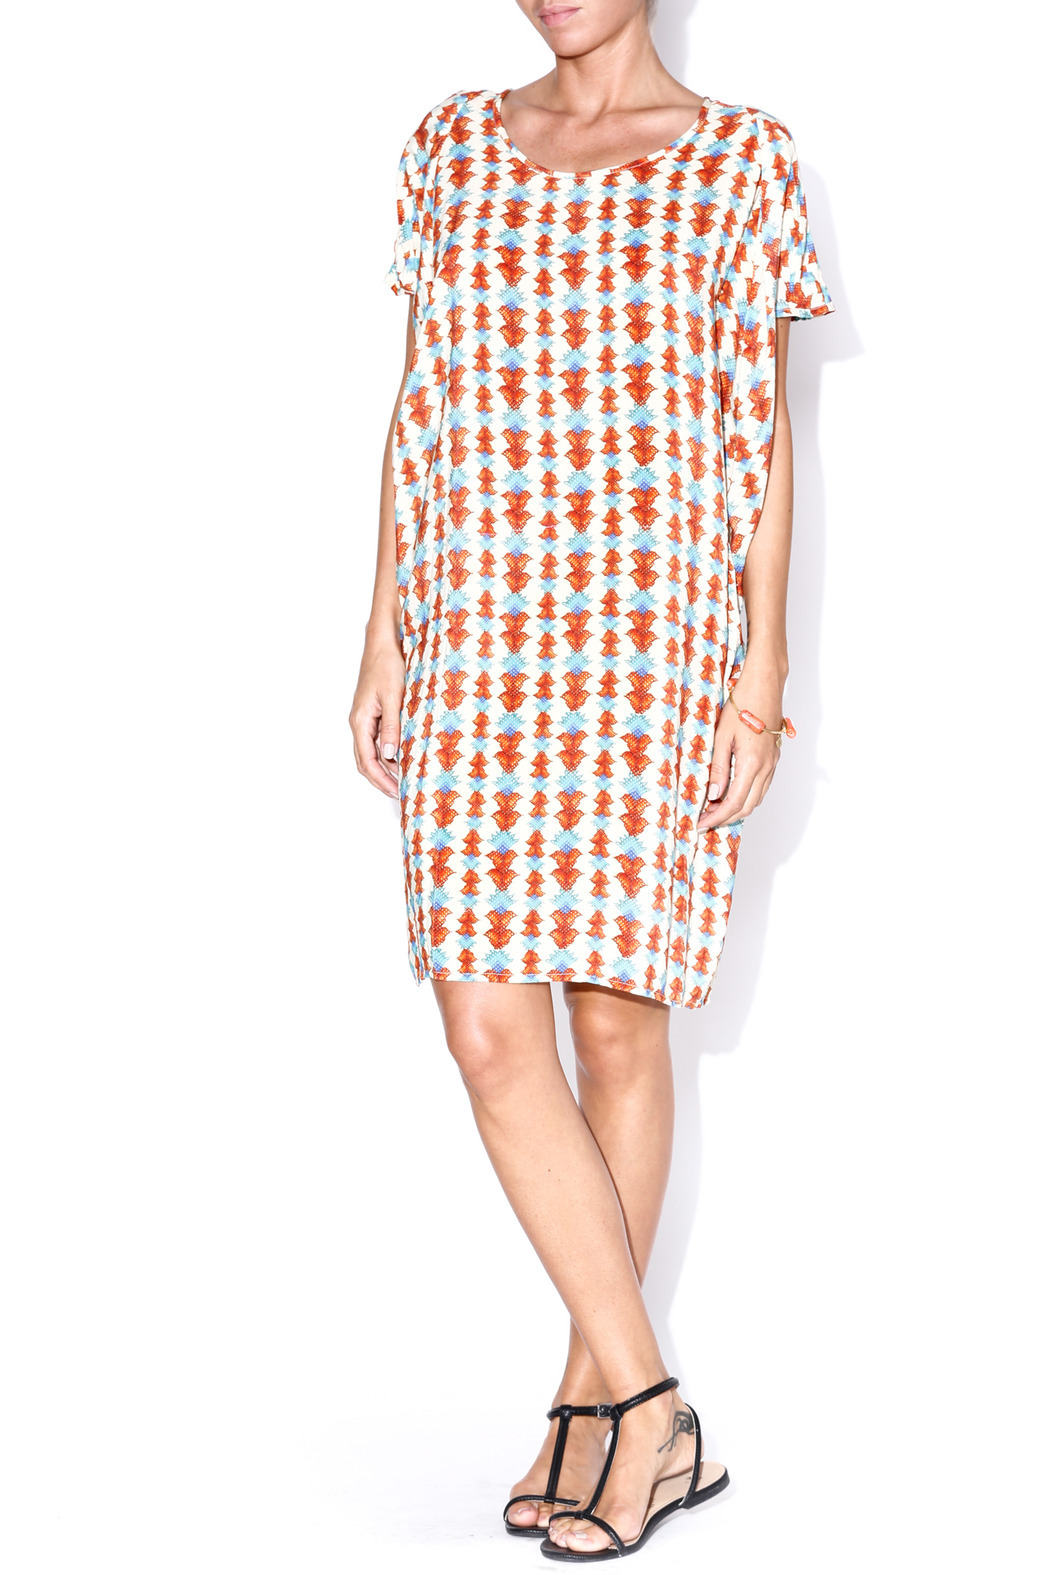 matta Agave Shalini Dress - Front Cropped Image